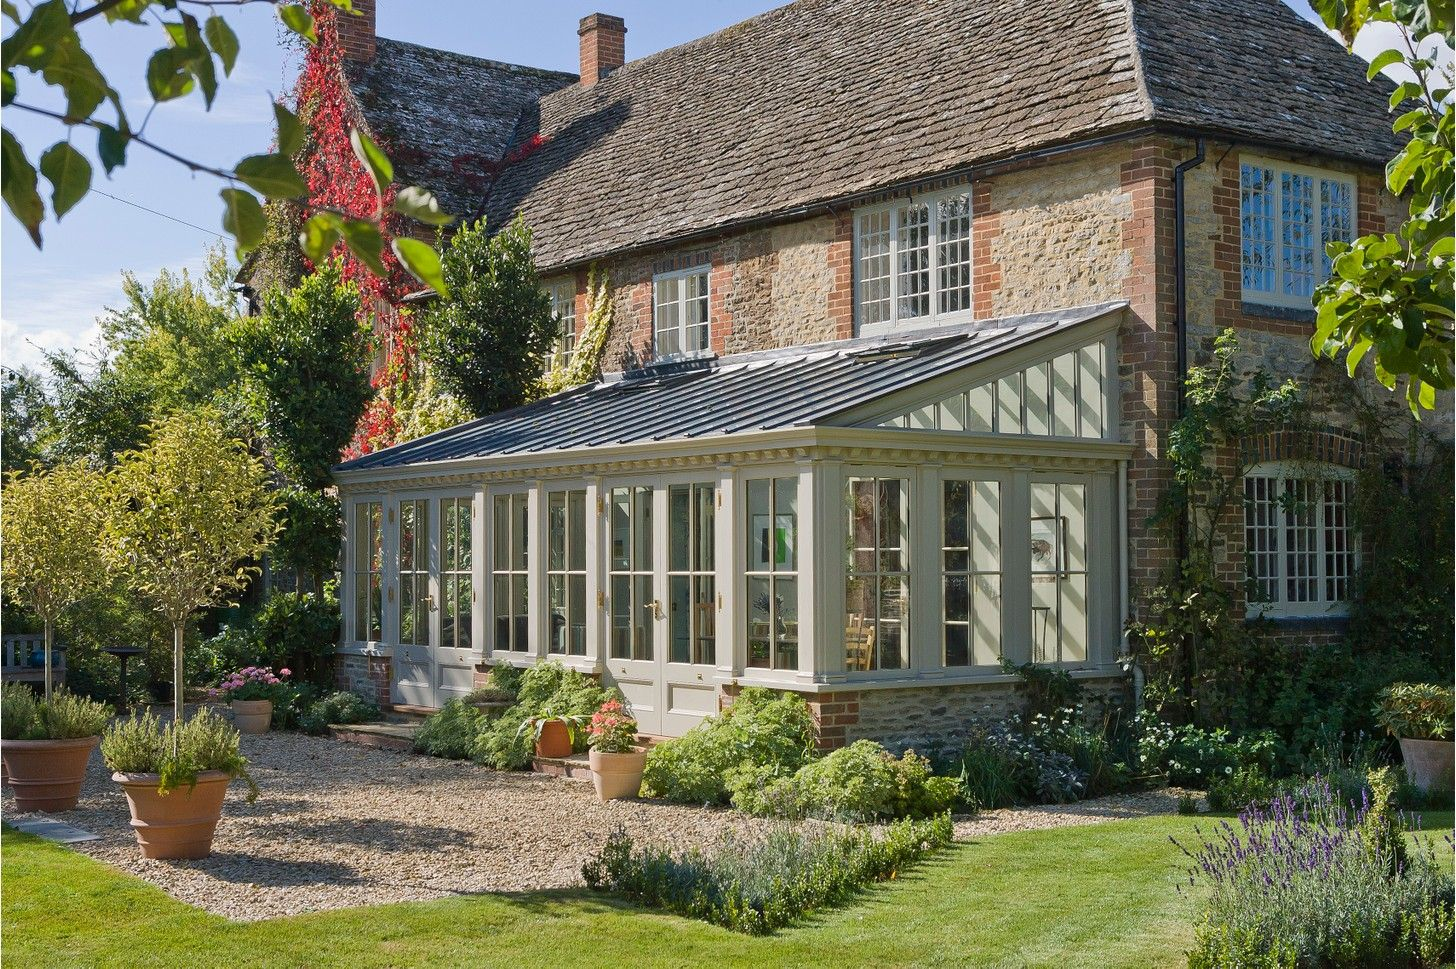 How to create a relaxing garden room for summer